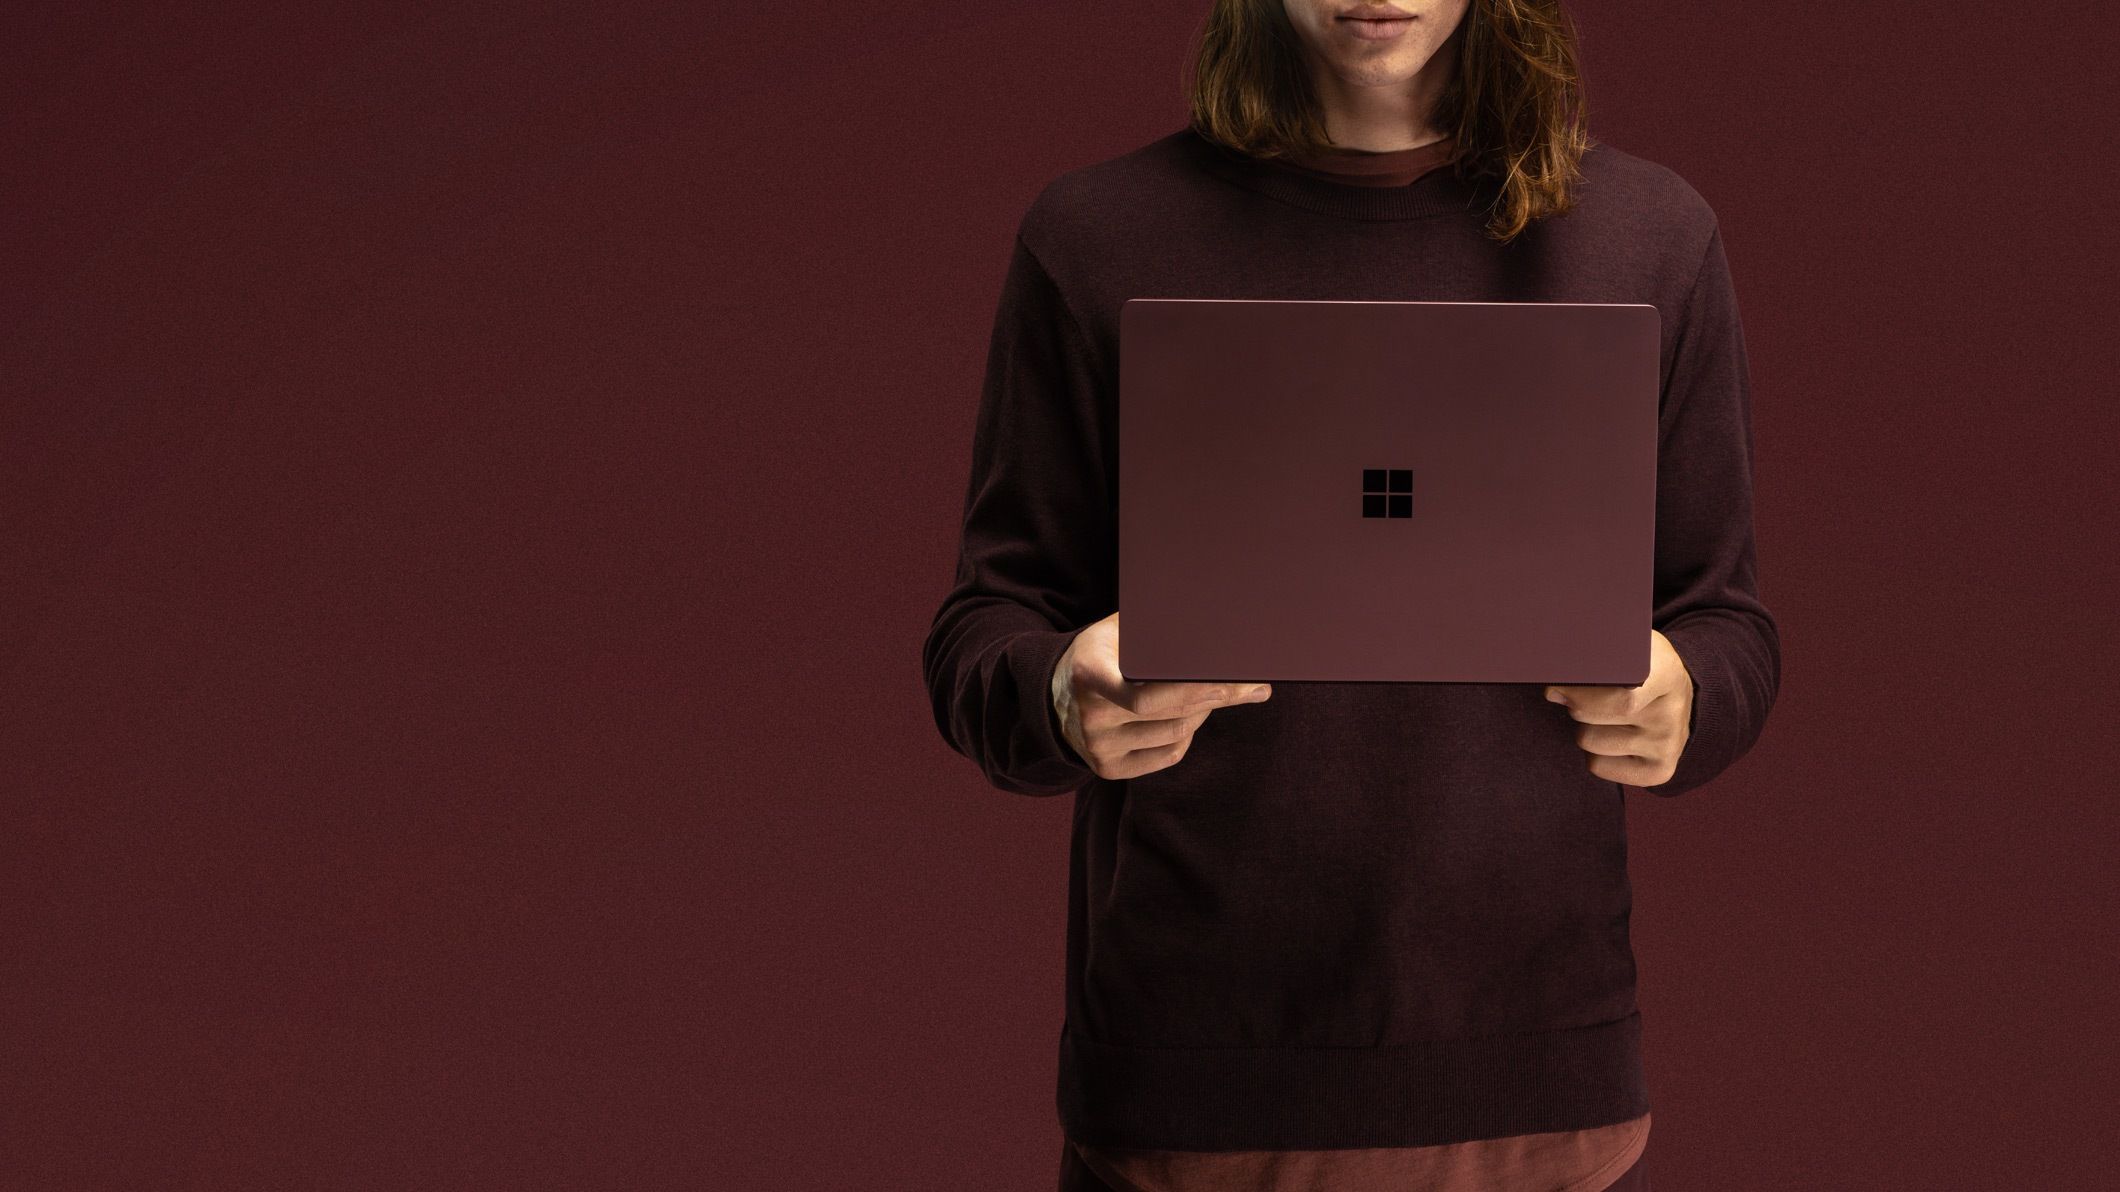 A person in a burgundy sweater stands holding an open Surface Laptop 2 in Burgundy